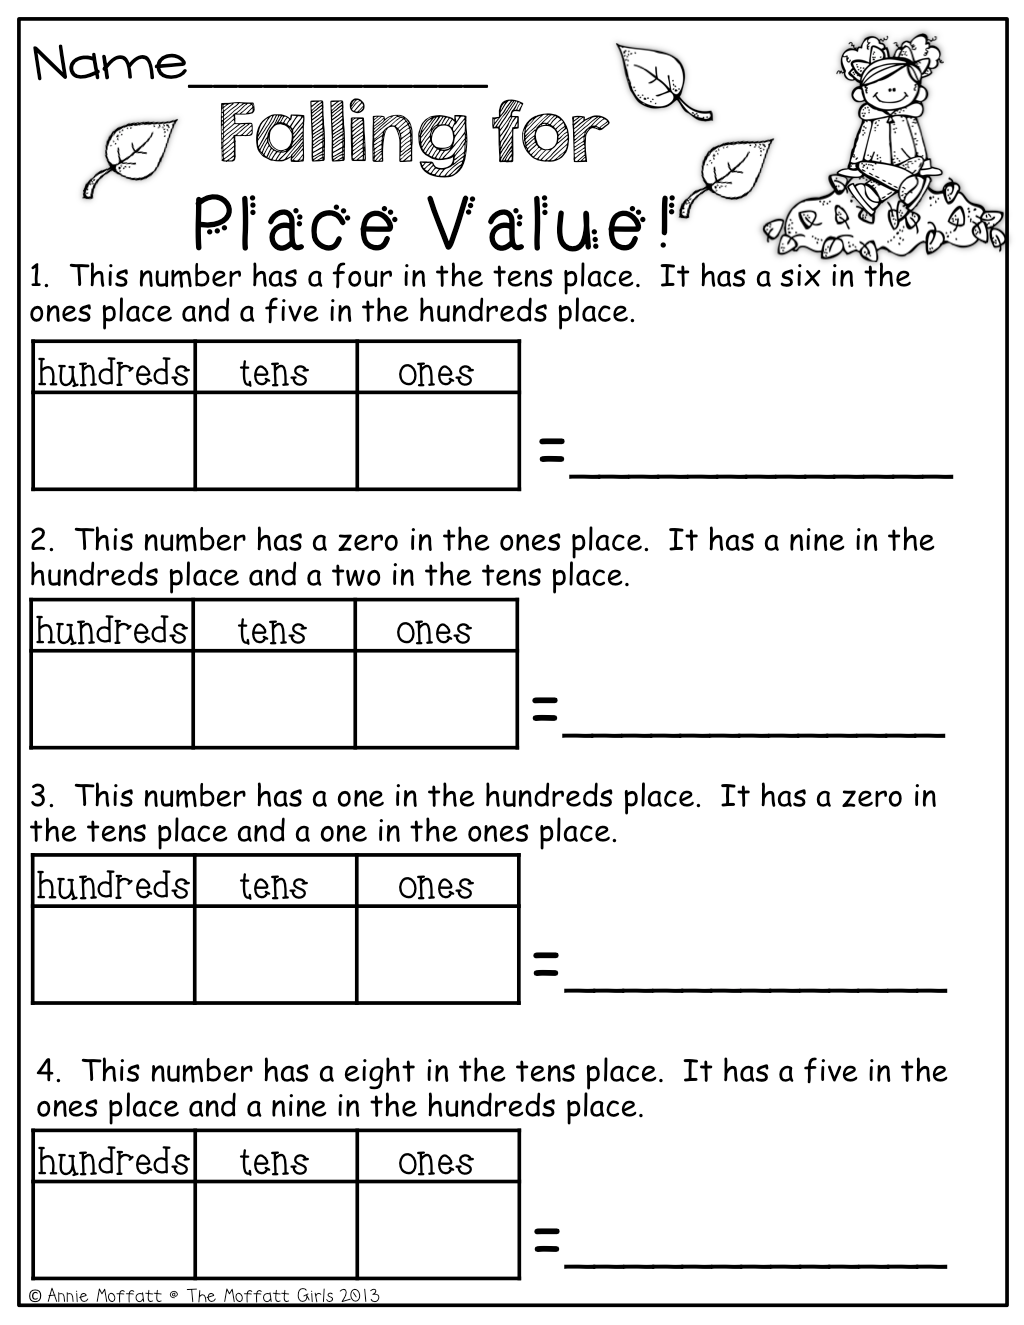 Place Value This Cost Money But I Can Do My Own 2 Nbt 1